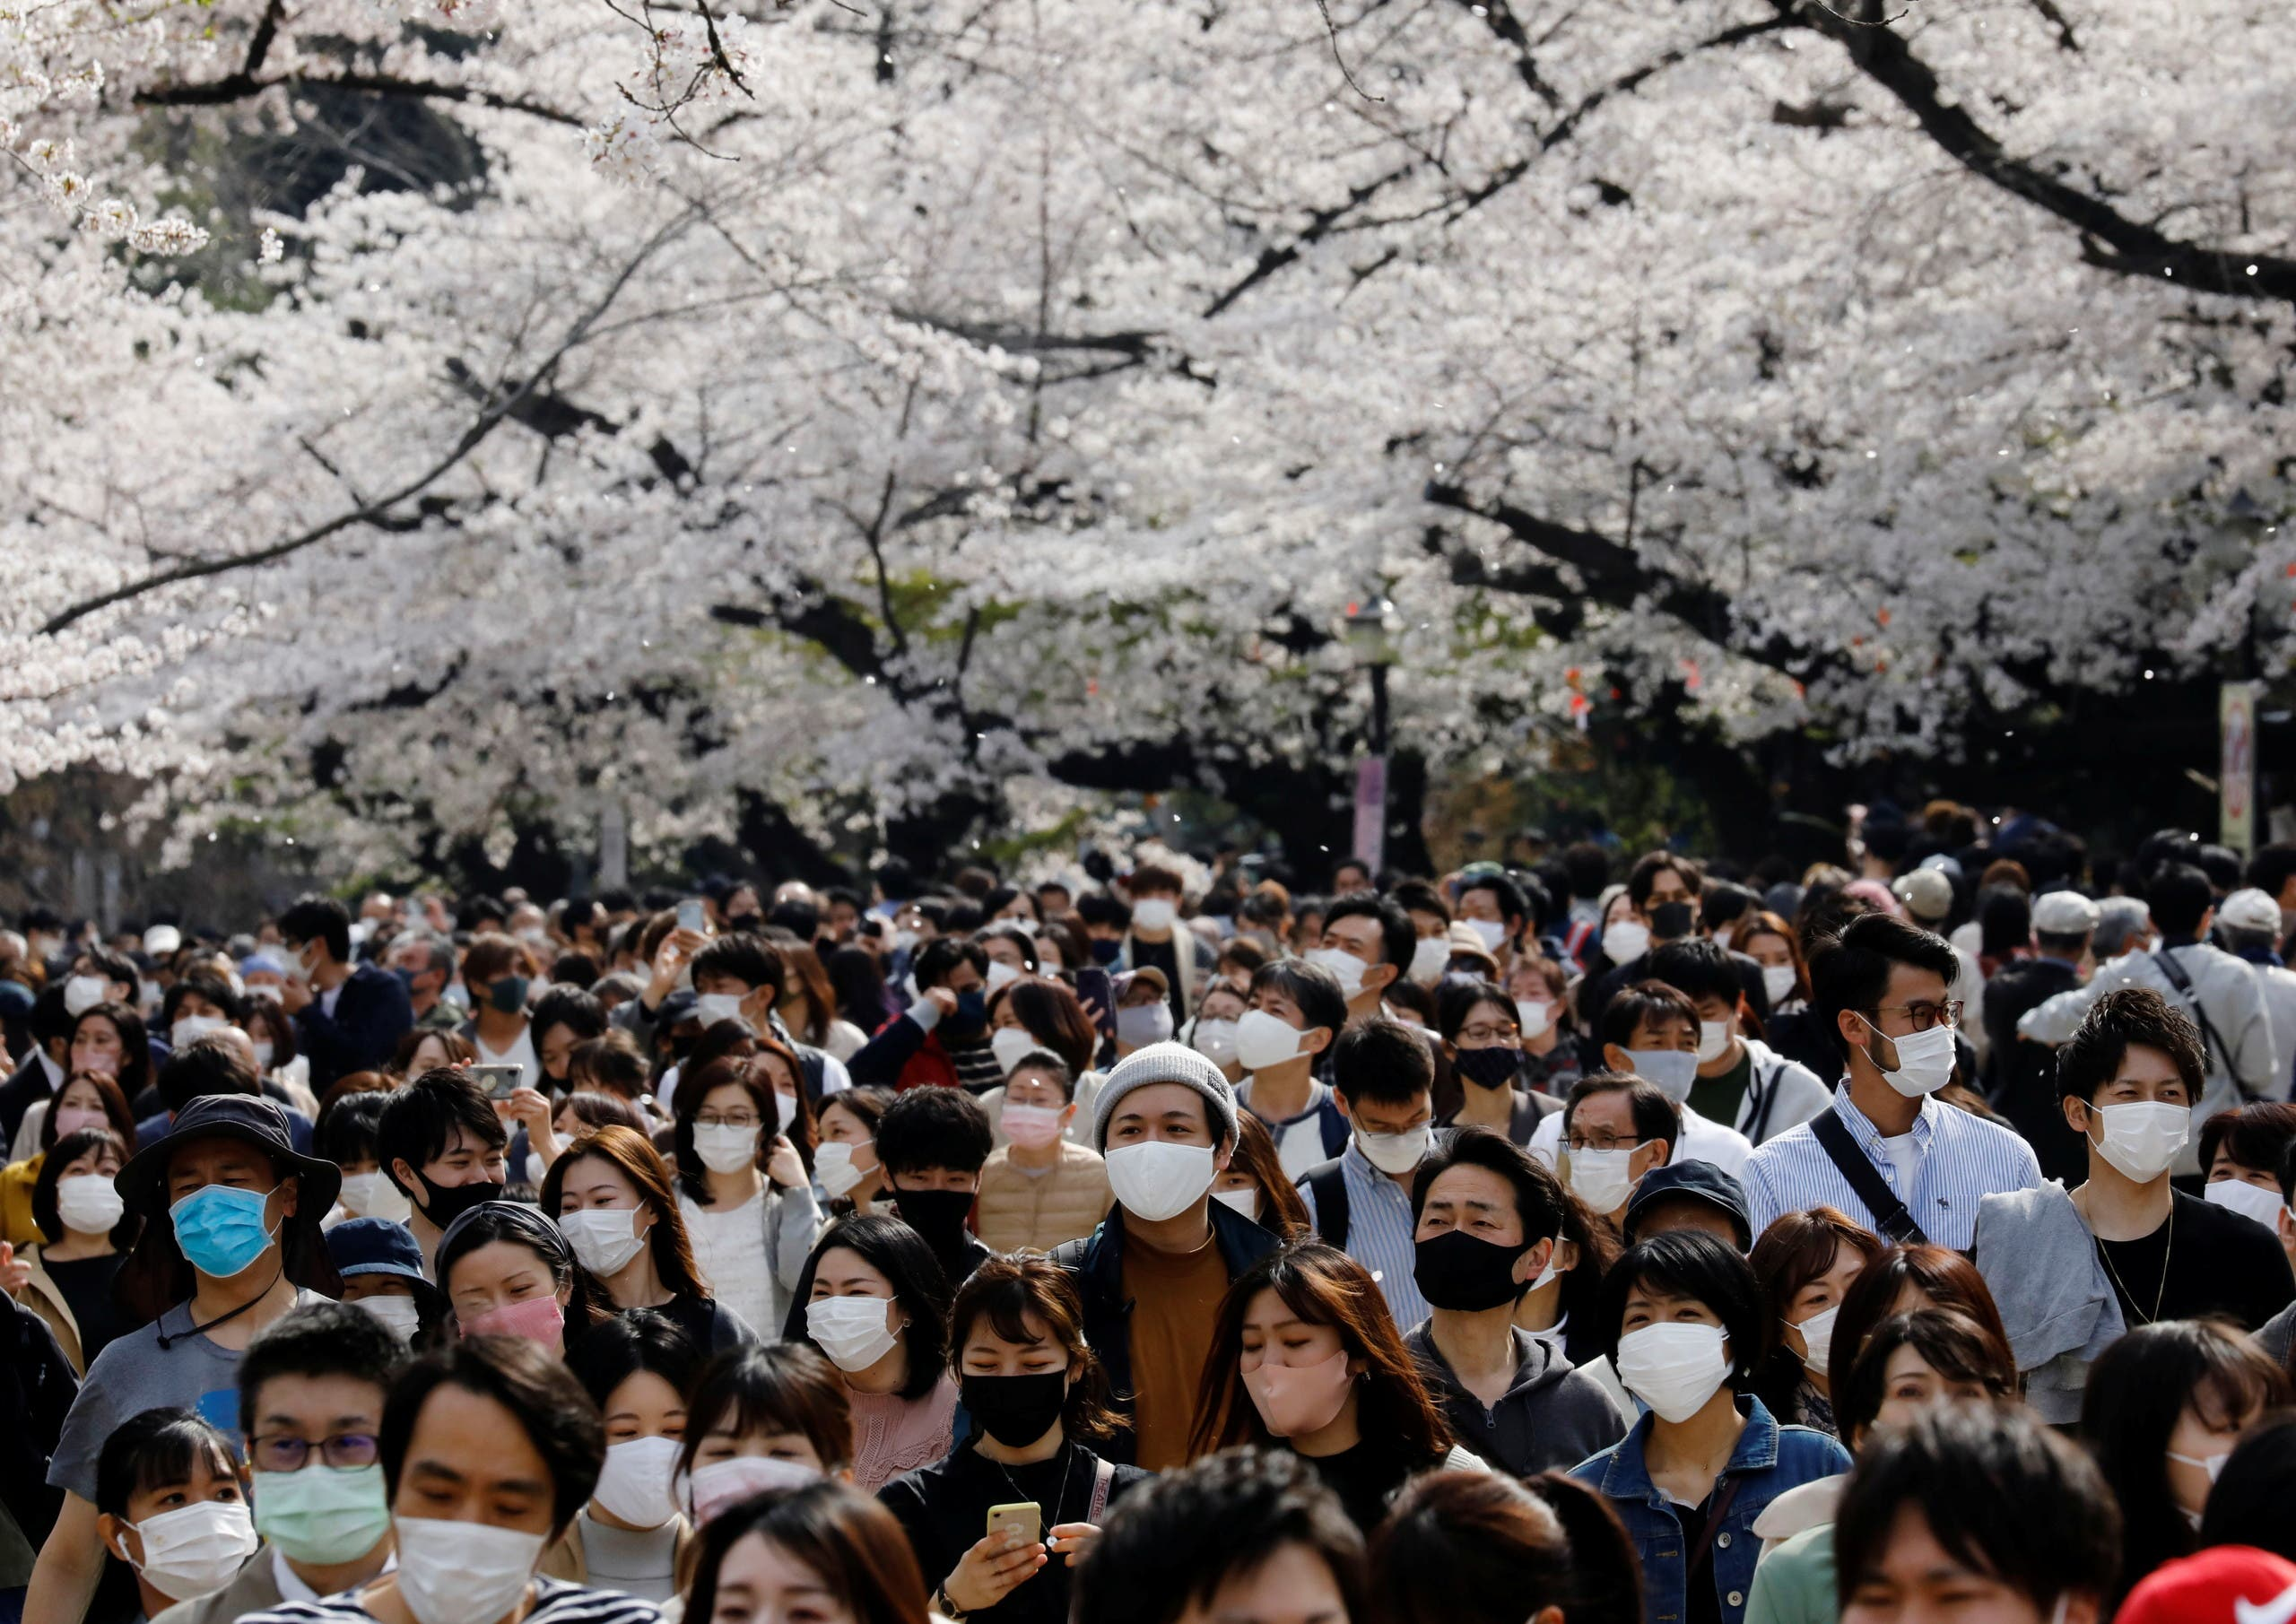 Visitors wearing protective face masks amid the coronavirus disease (COVID-19) pandemic, walk underneath blooming cherry blossoms at Ueno Park in Tokyo, Japan, March 27, 2021. (File photo: Reuters)